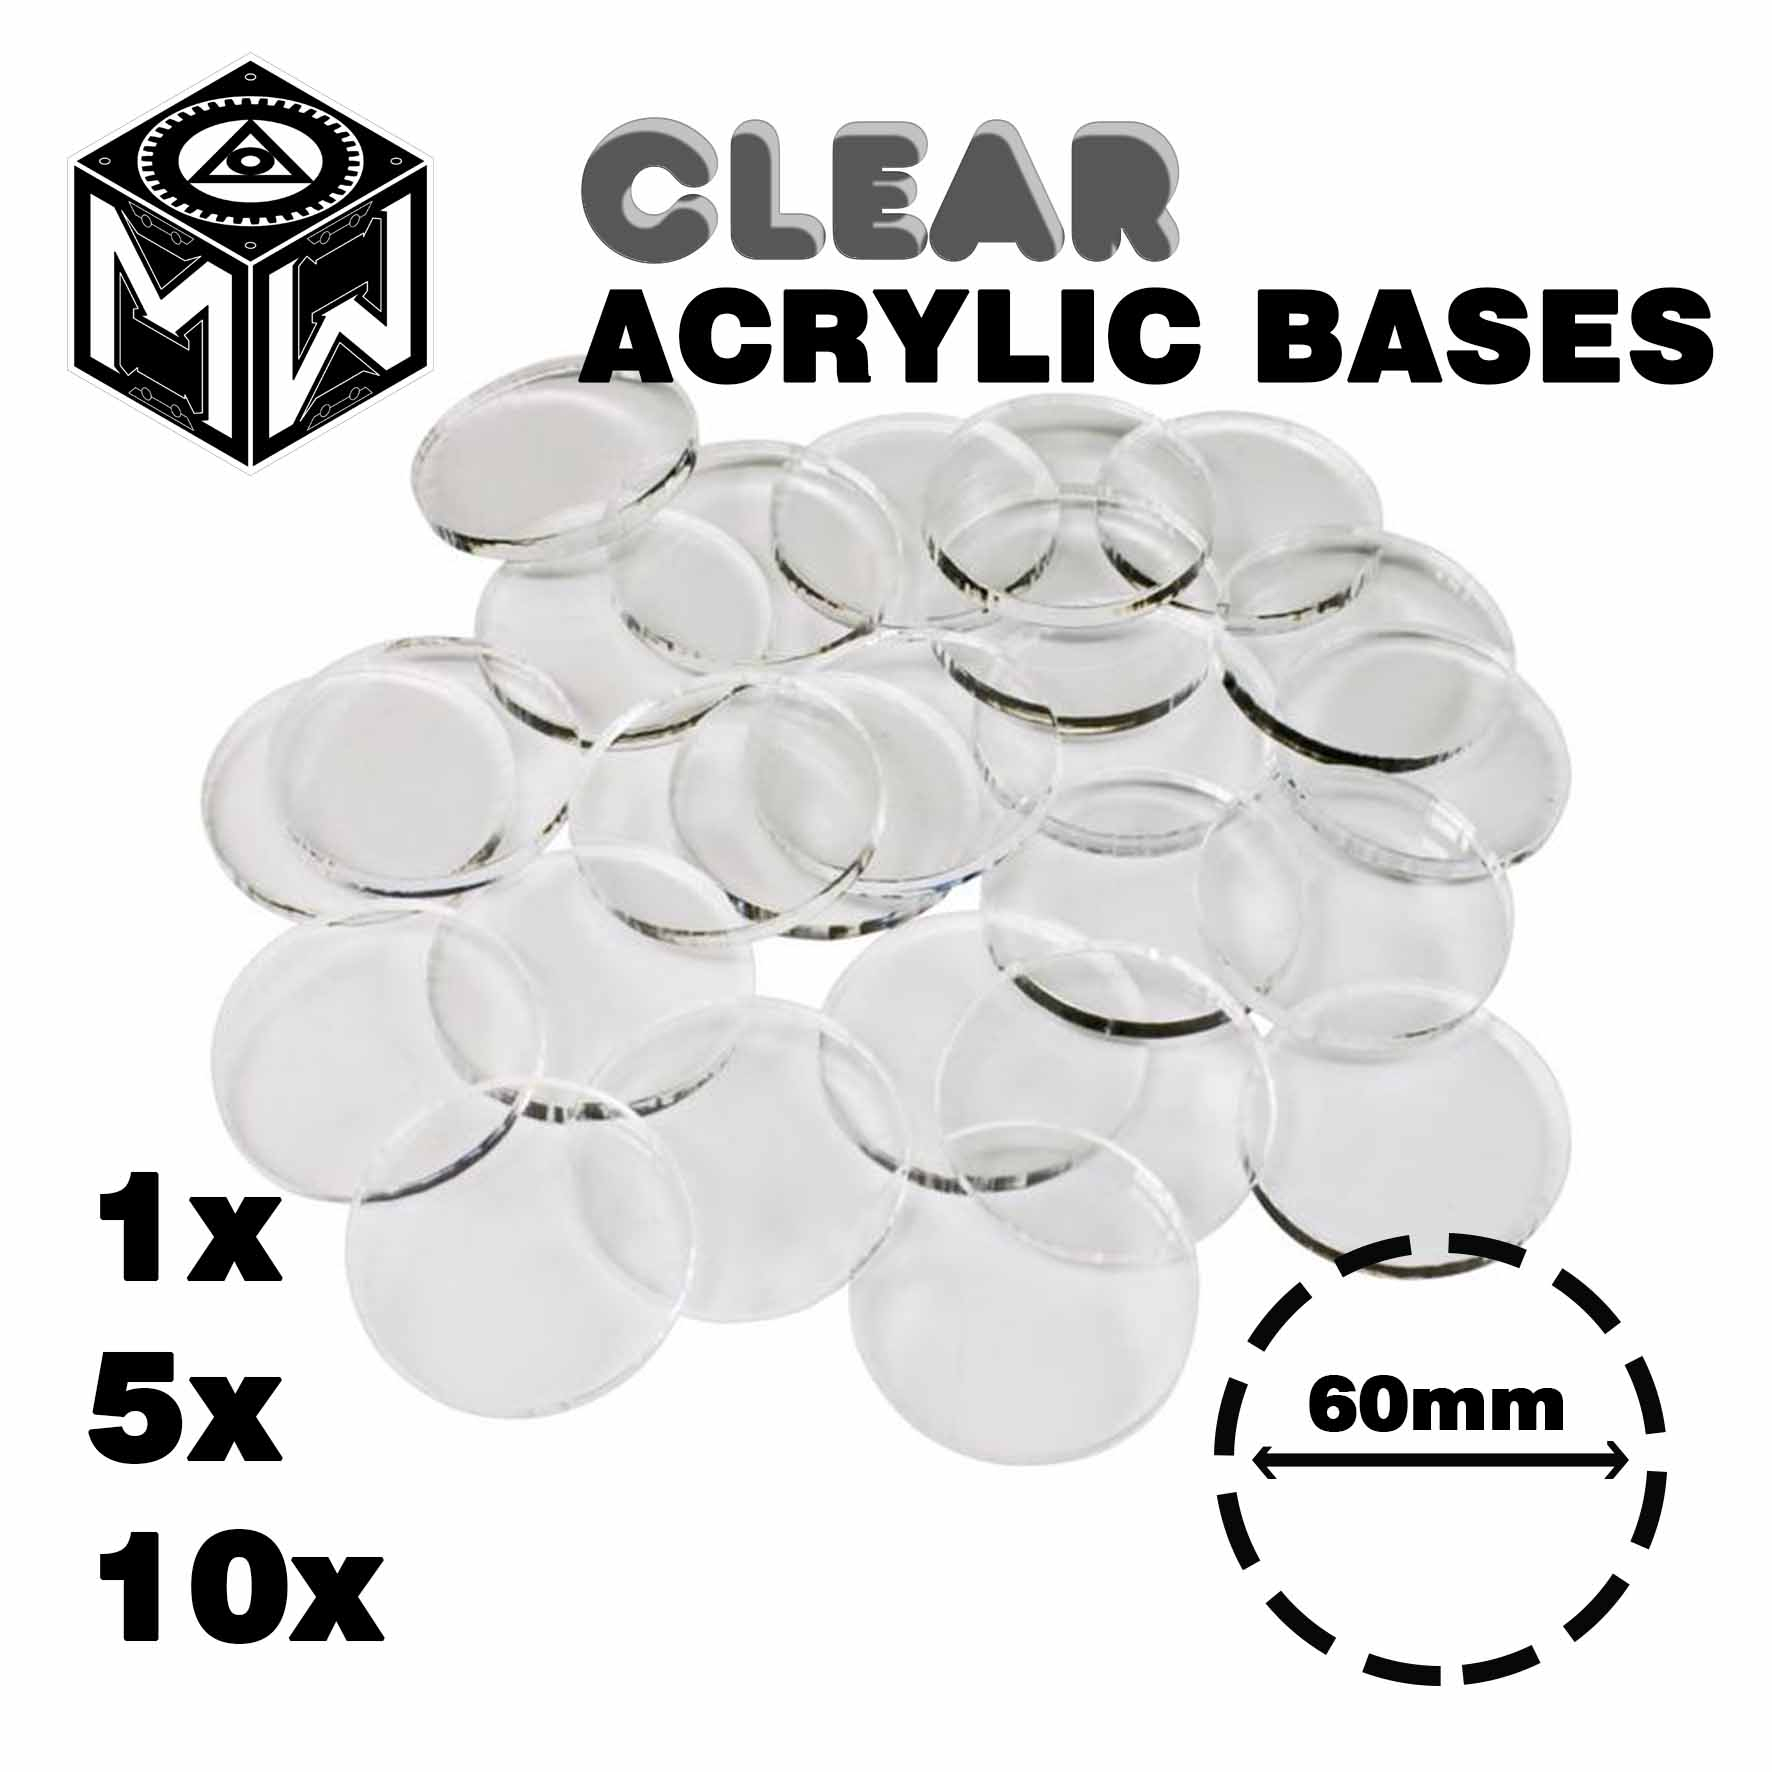 3mm Acrylic Clear Bases, Round 60mm